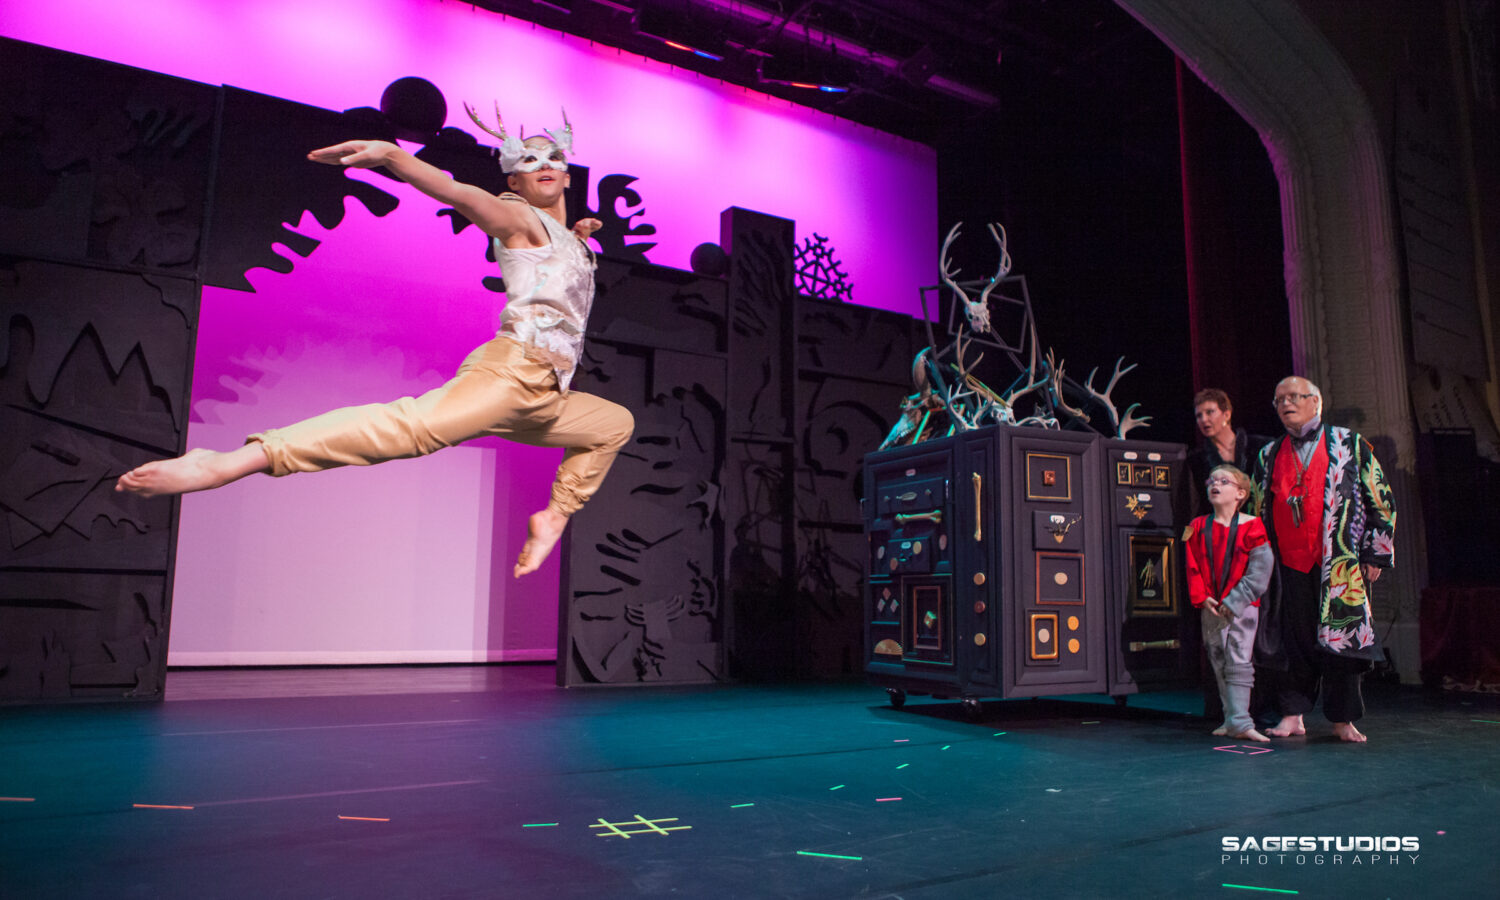 man jumping during theater performance